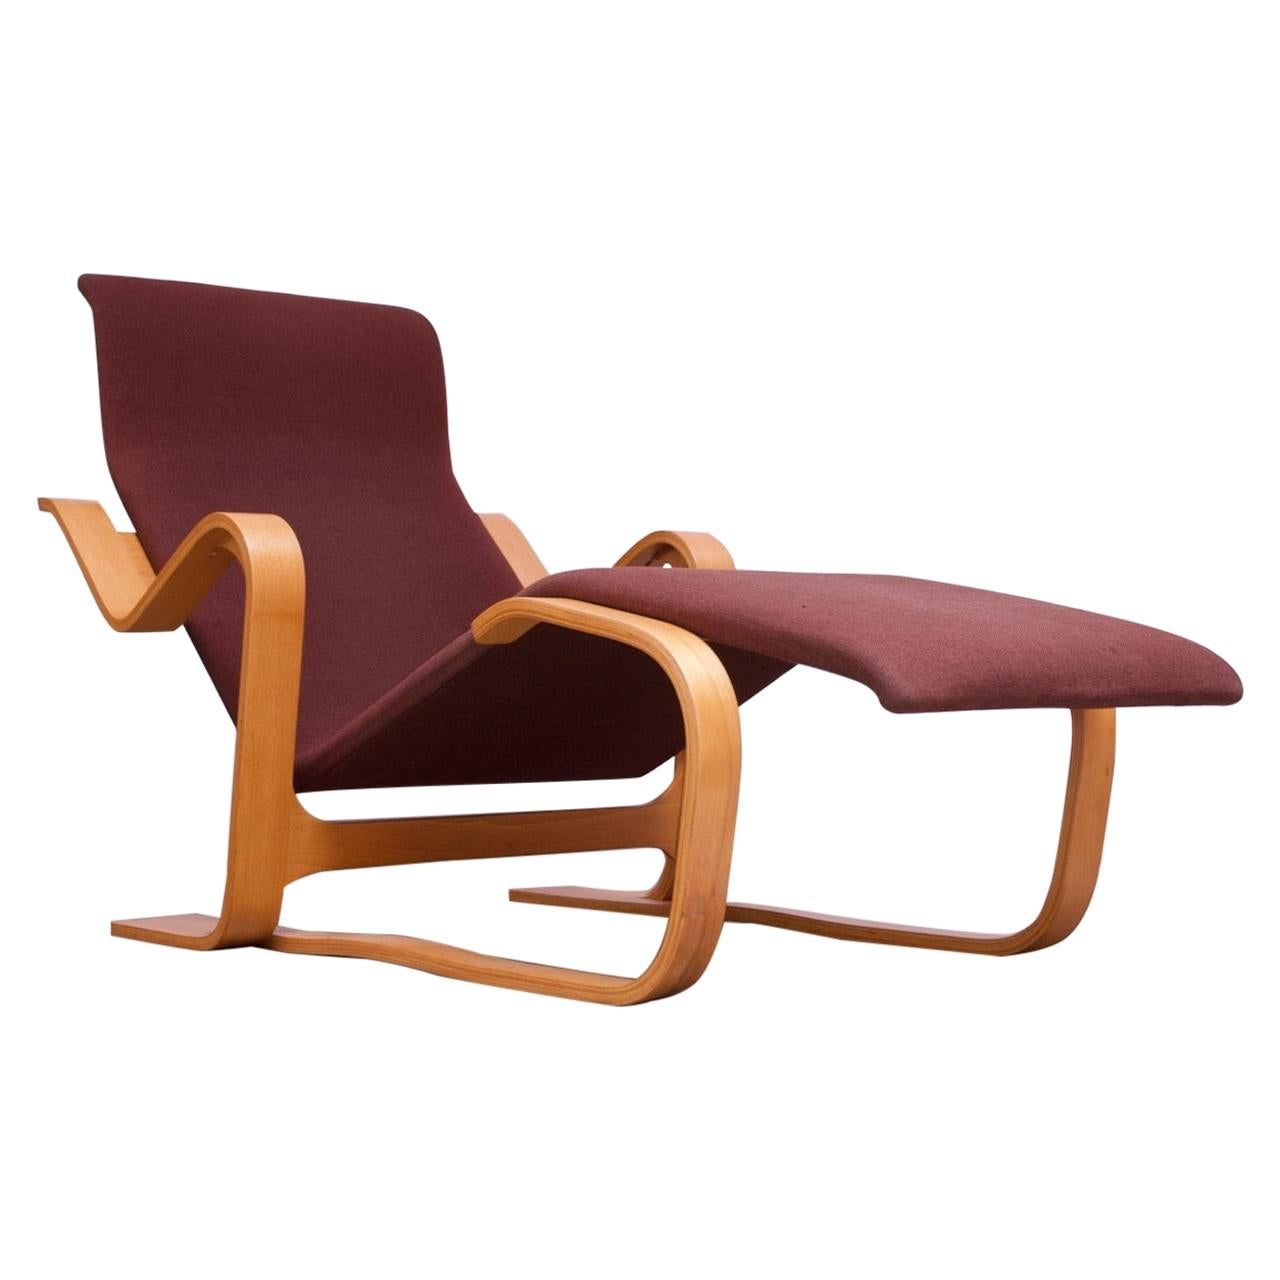 """Vintage Marcel Breuer Bent Plywood Chaise Longue / """"Long Chair"""" for Knoll"""